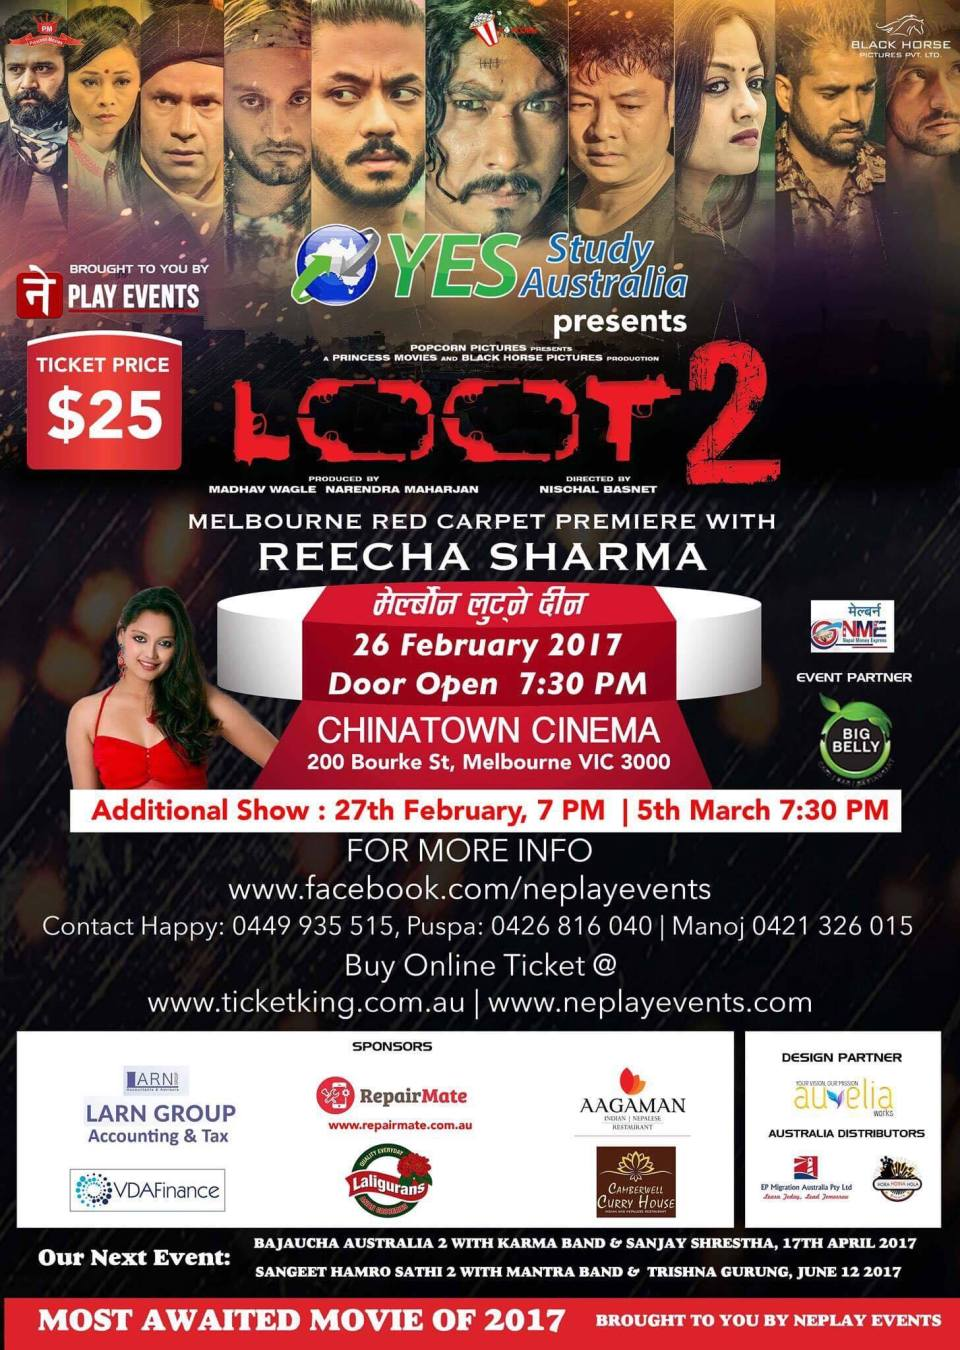 16010453_1411978292160280_1528634635_o1 Loot-2 Tickets Now on sale simply inbox me to save your tickets